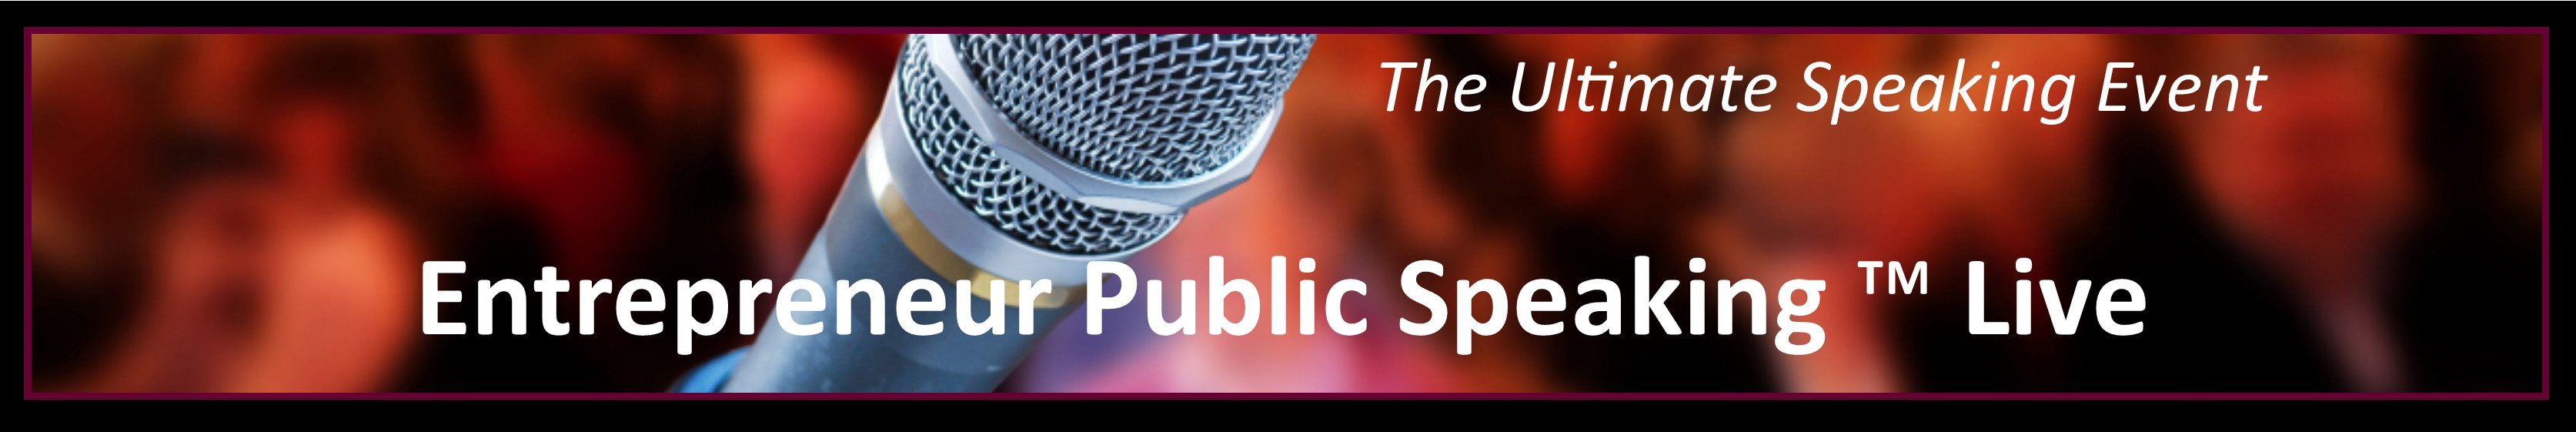 Entrepreneur Public Speaking Live Event